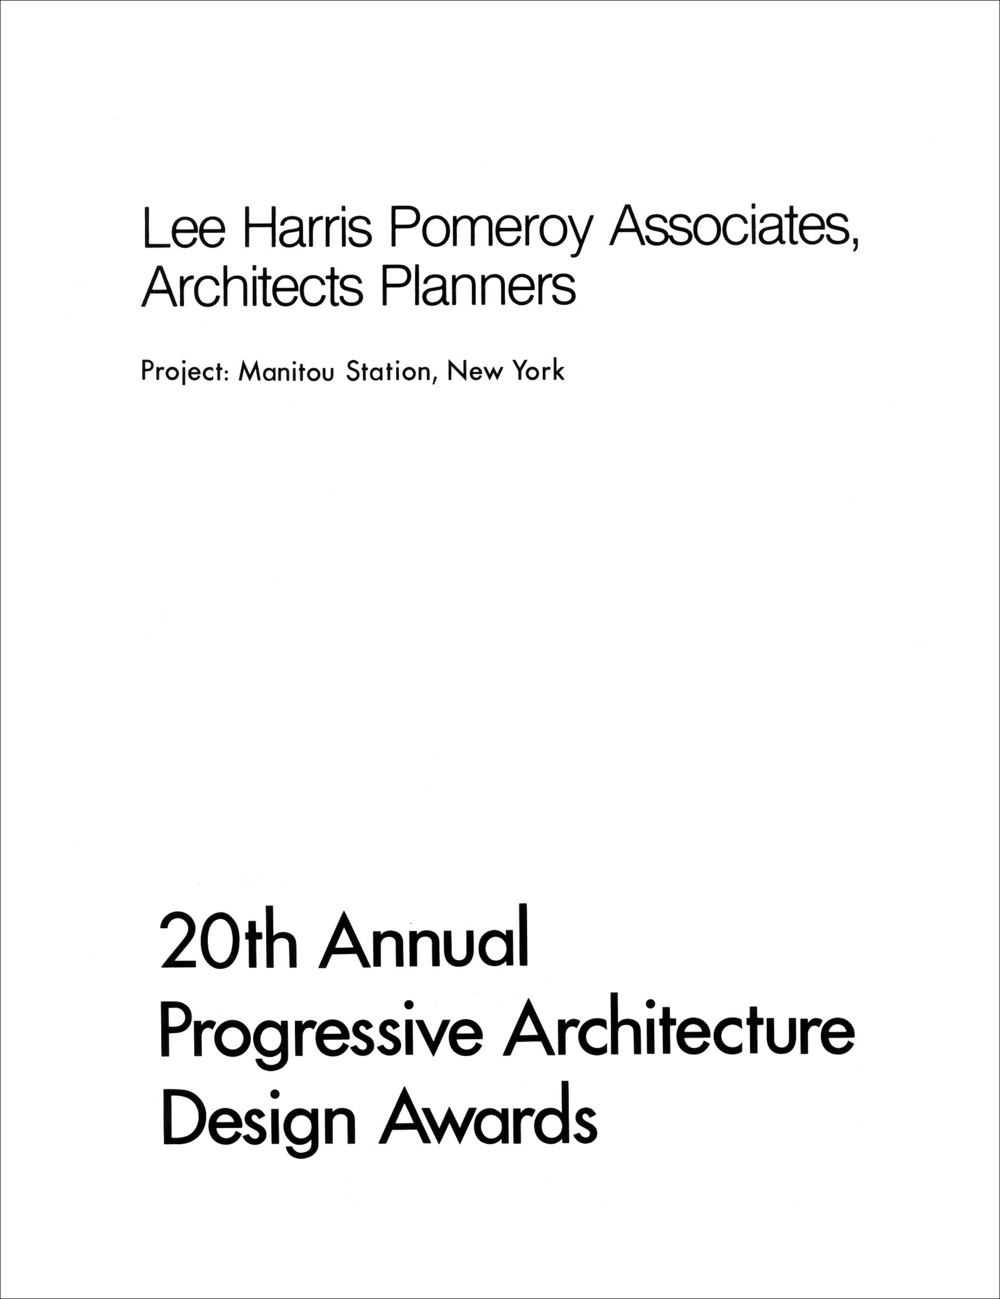 20th Annual Progressive Architecture Design Awards: Manitou Station